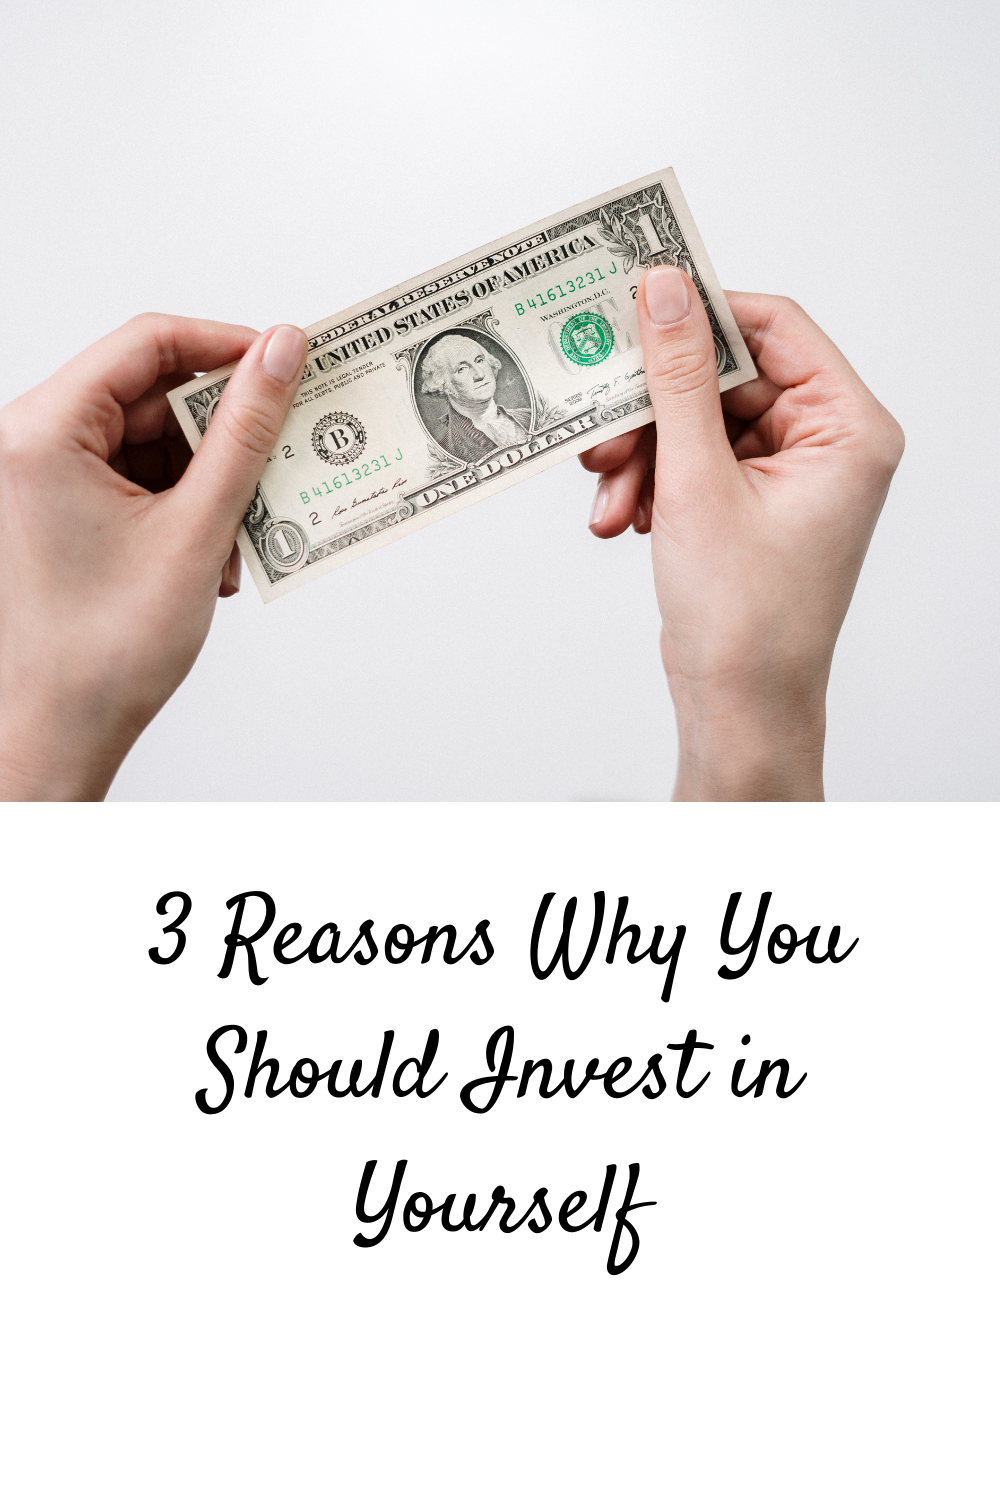 3 Reasons Why You Should Invest in Yourself